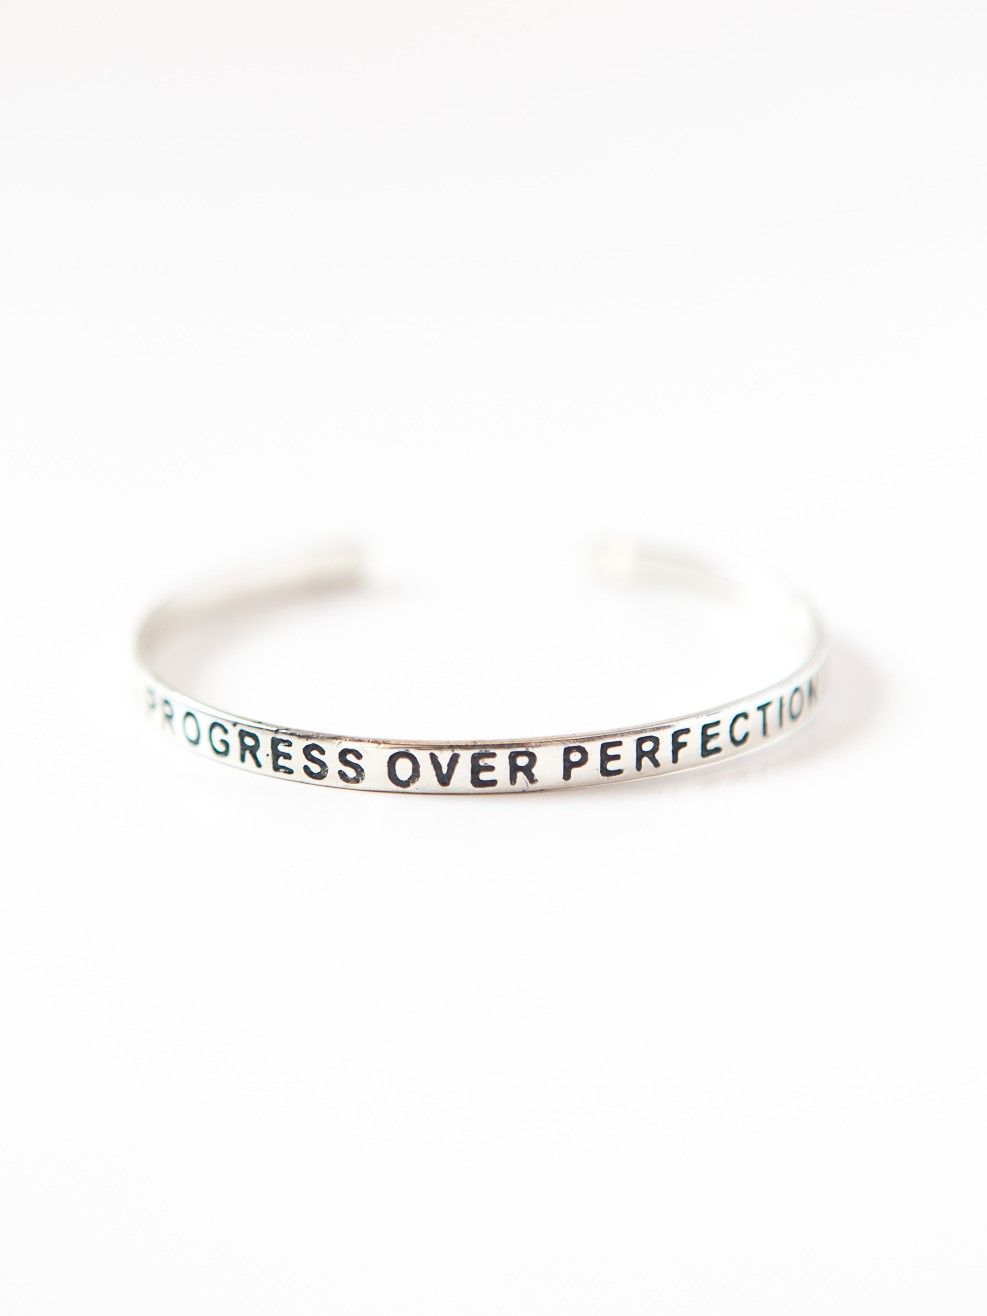 Progress Over Perfection Bracelet